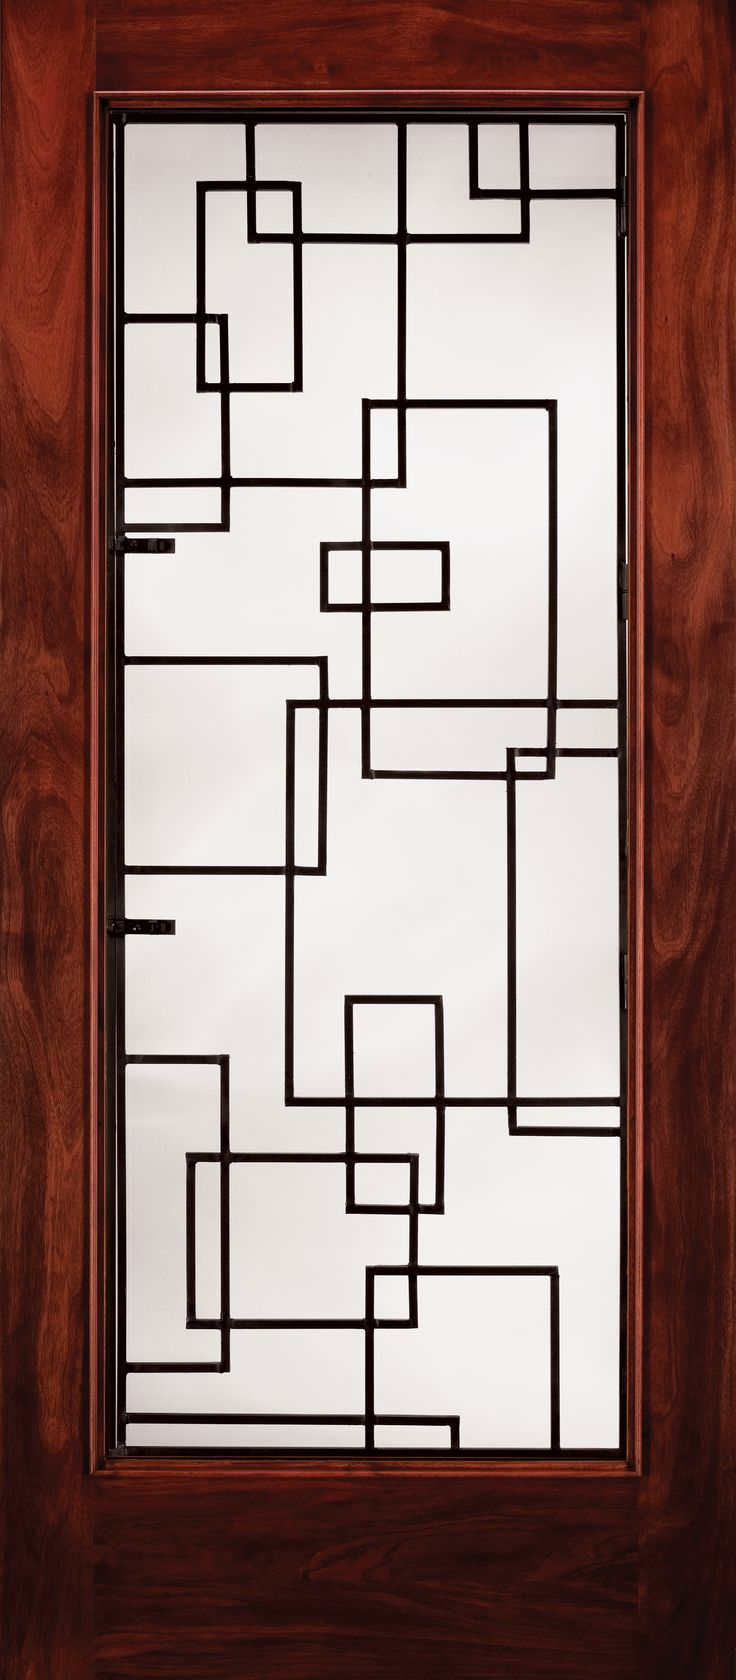 Best 25 asian stained glass panels ideas on pinterest for Front door quilt pattern